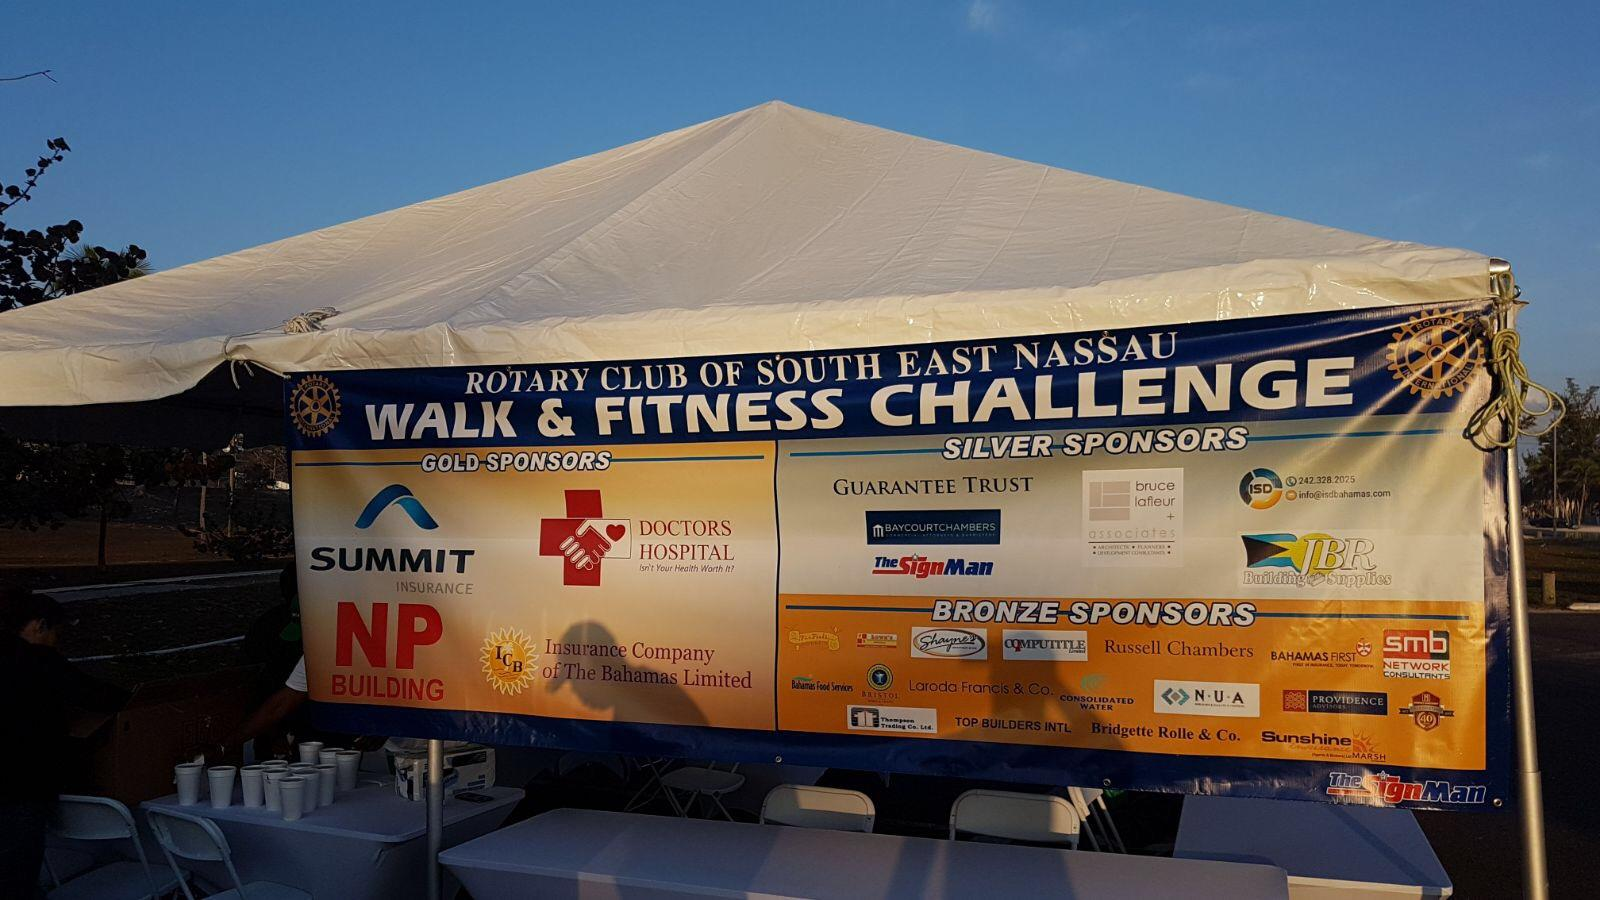 2017 Health Walk Amp Fitness Challenge Rotary Club Of